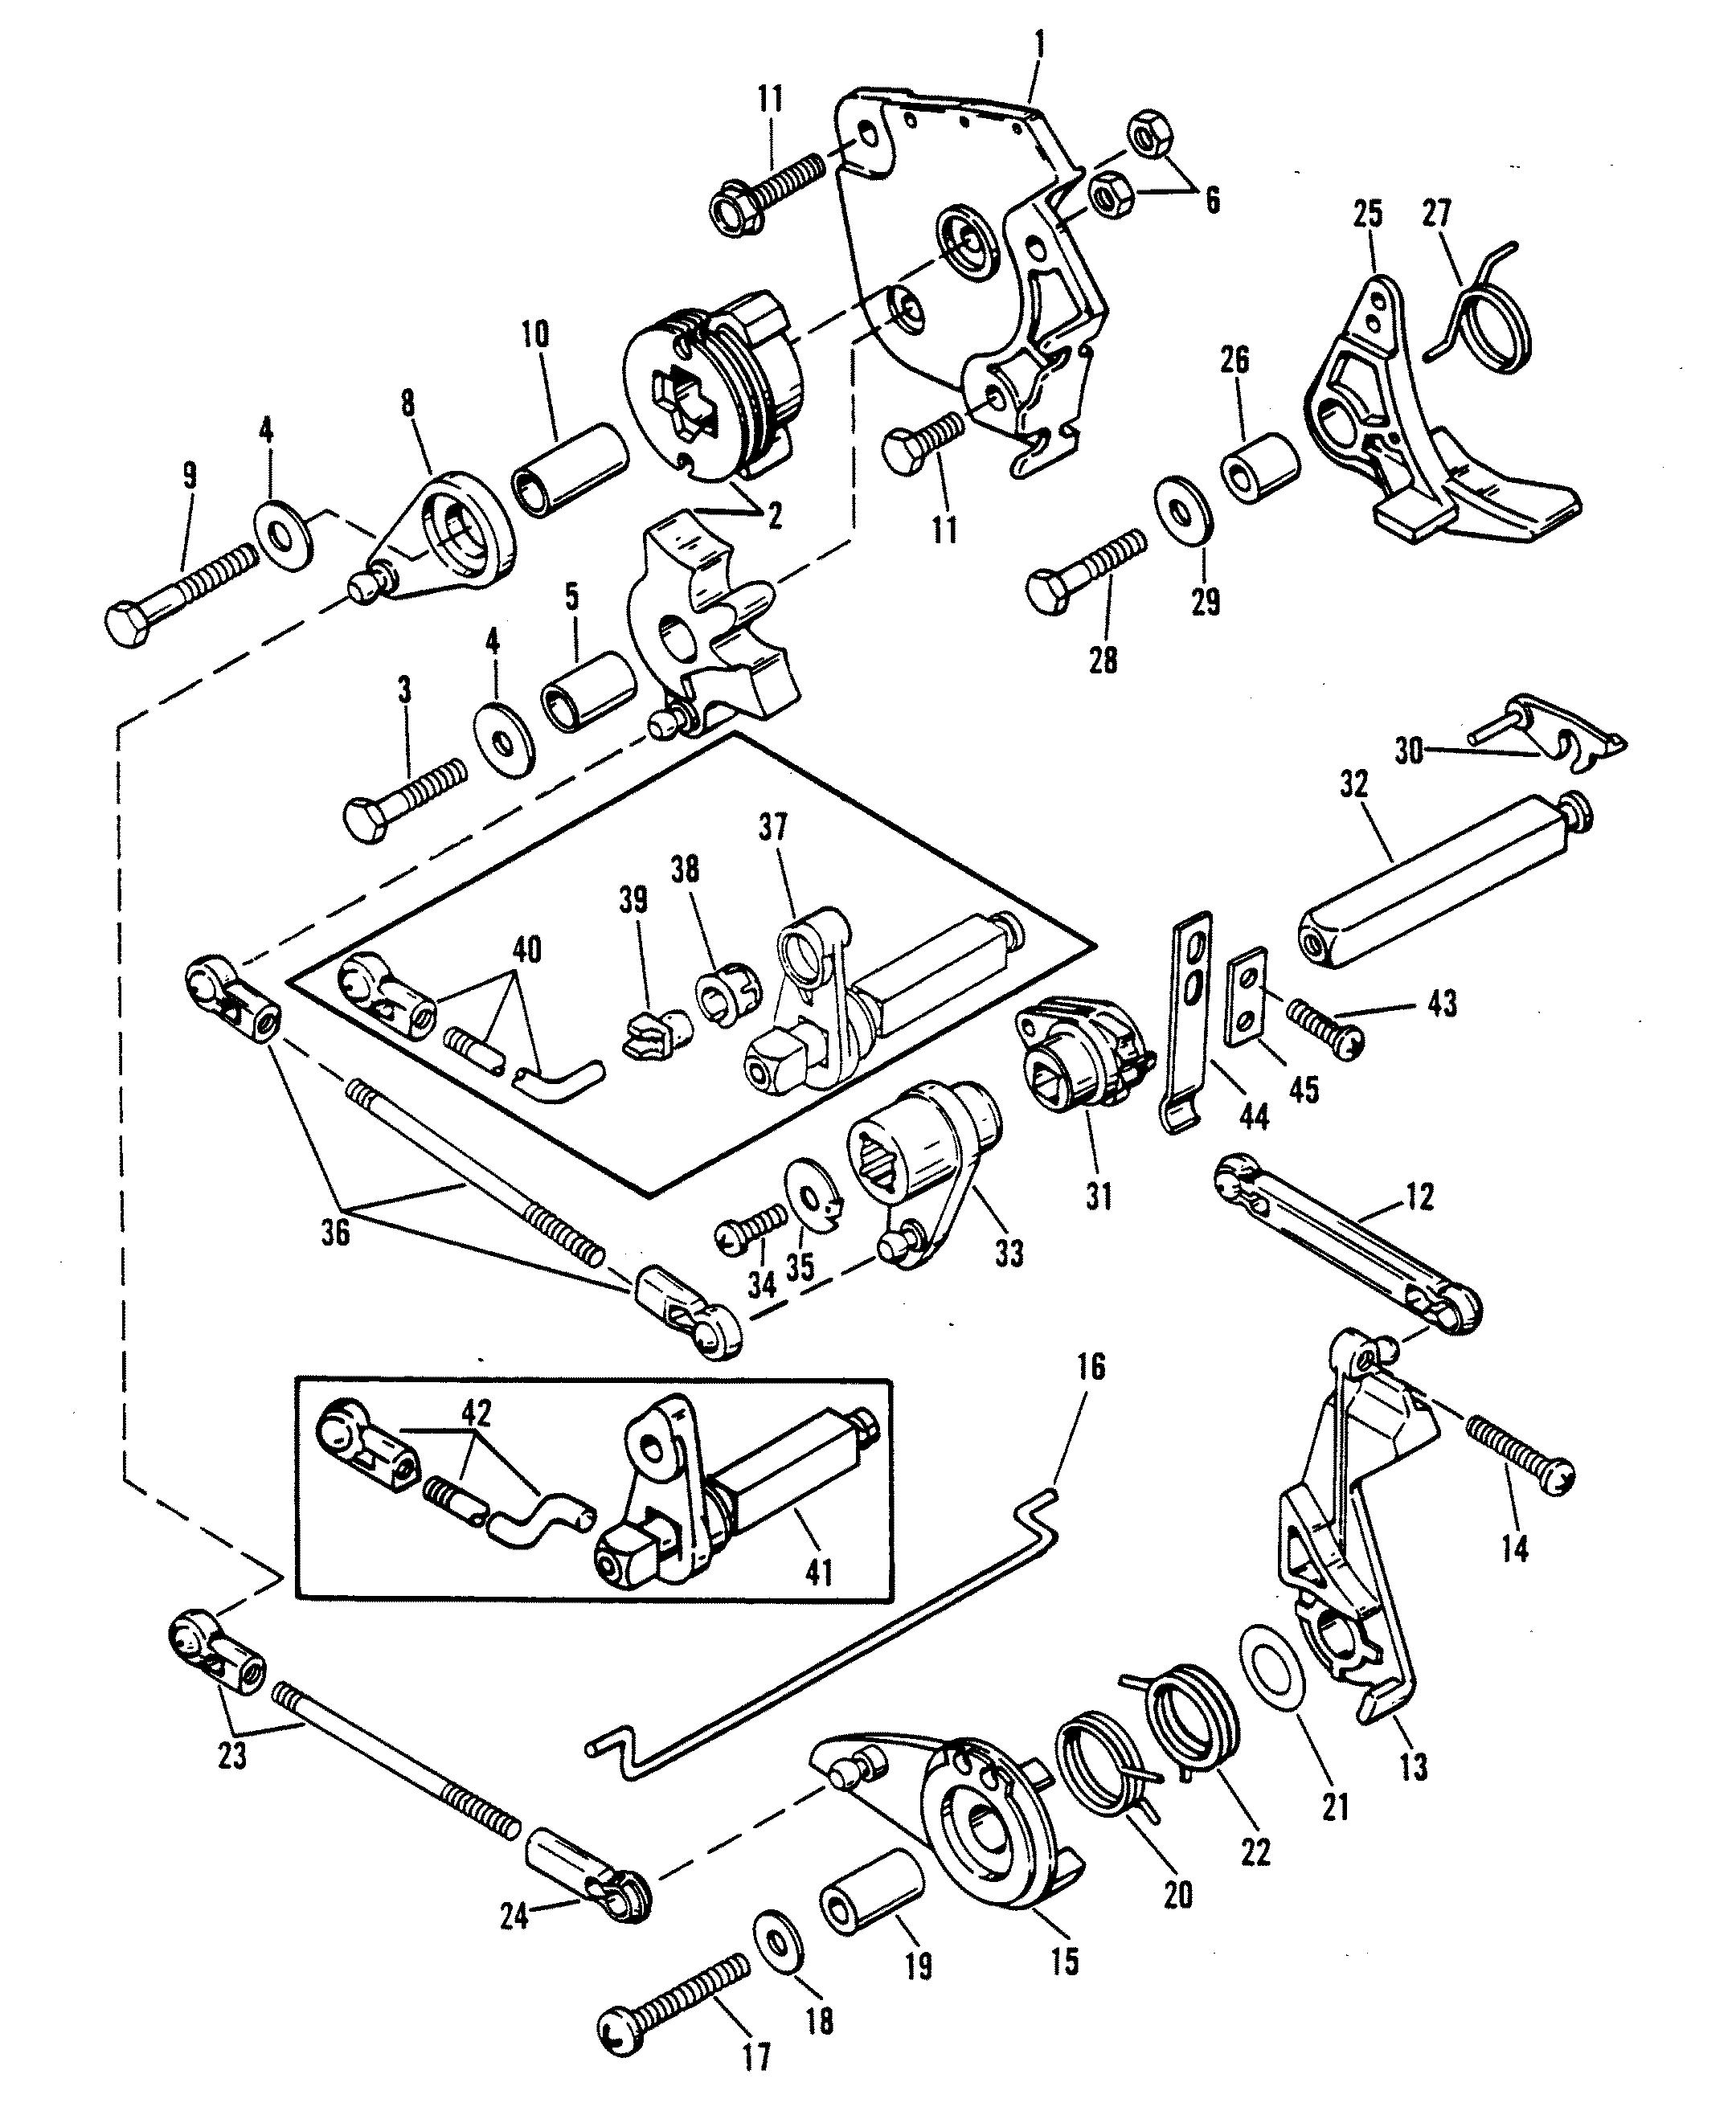 Mercury Lower Unit Wiring Diagram: Mercury Outboard Motor Parts Diagram